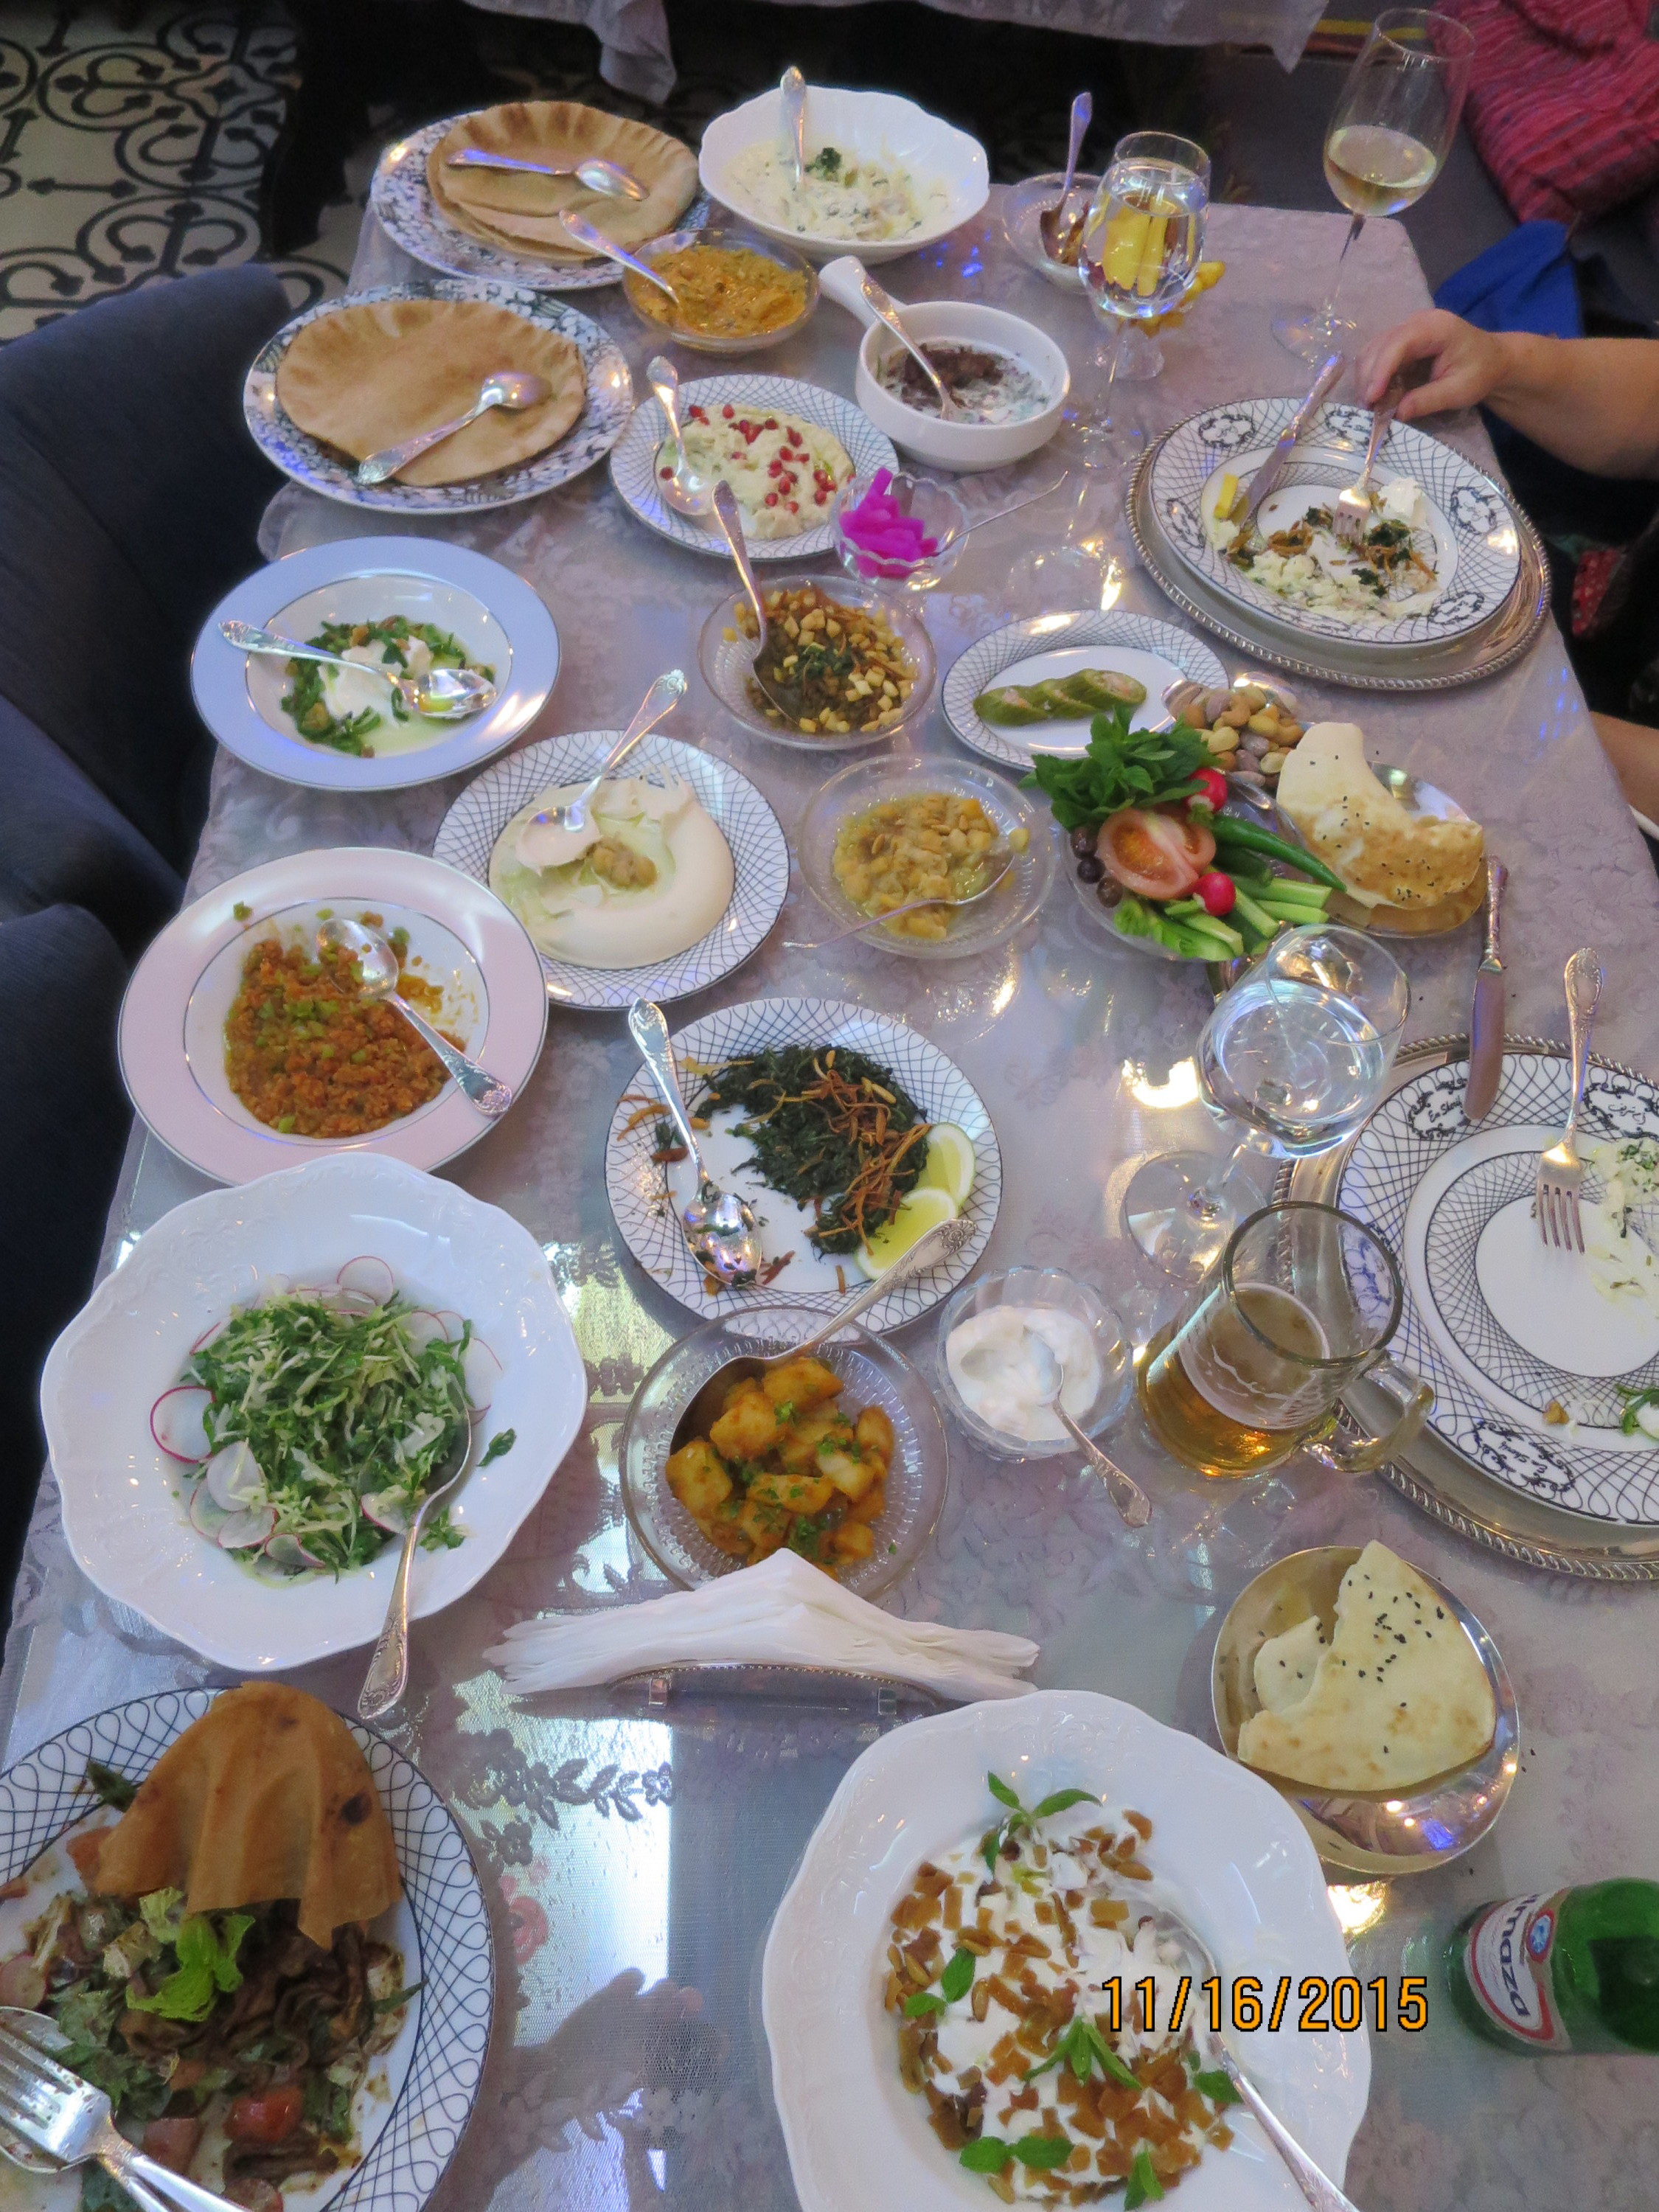 a sampling of some the the Lebanese food